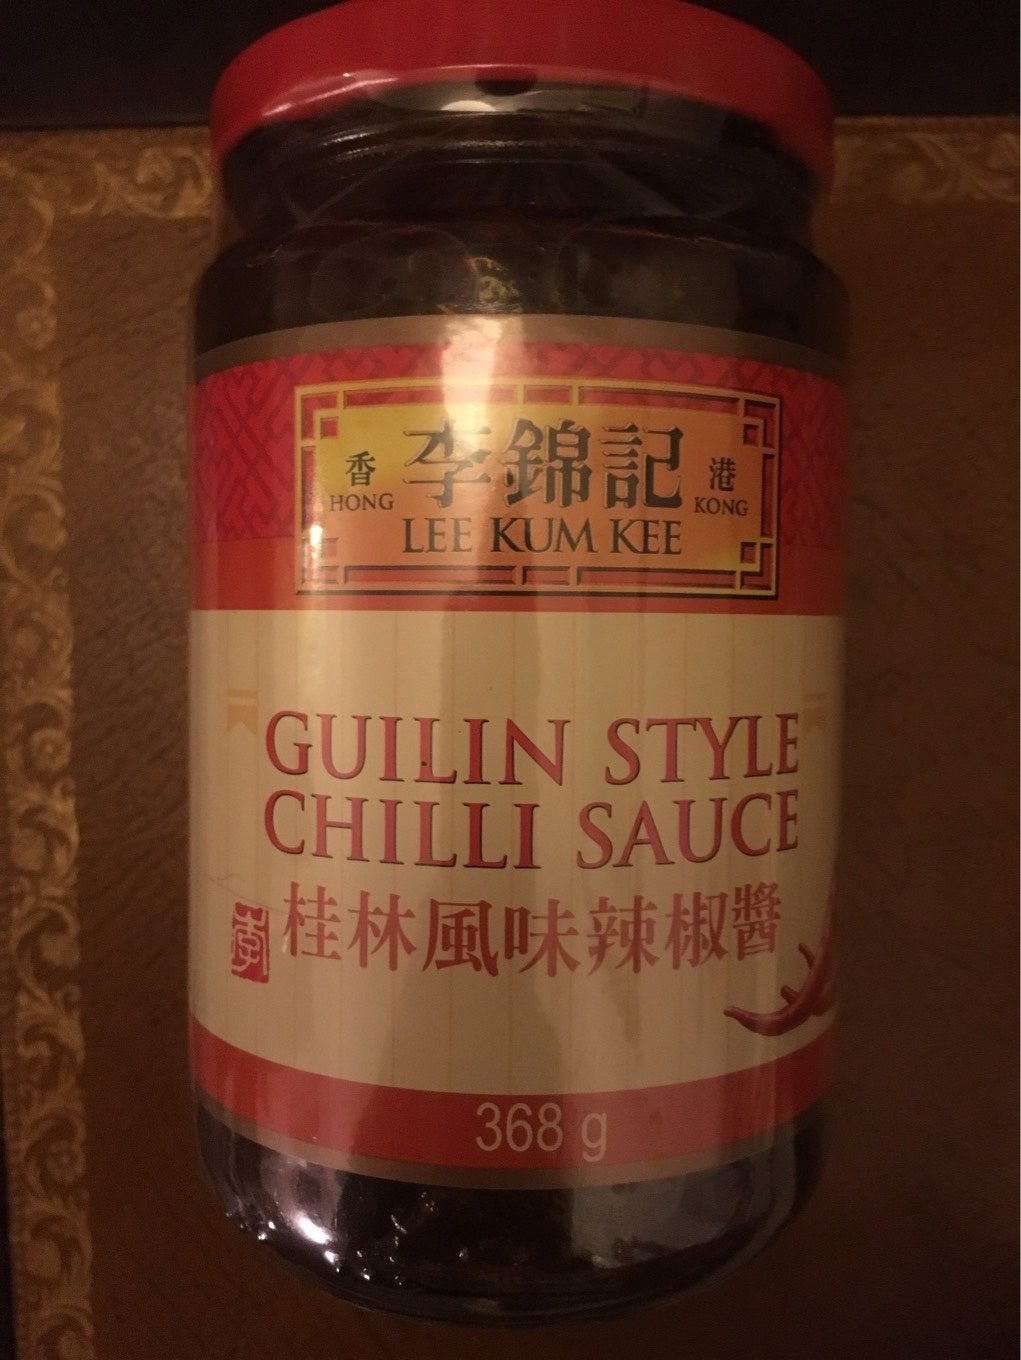 Guilin Style Chili Sauce - Product